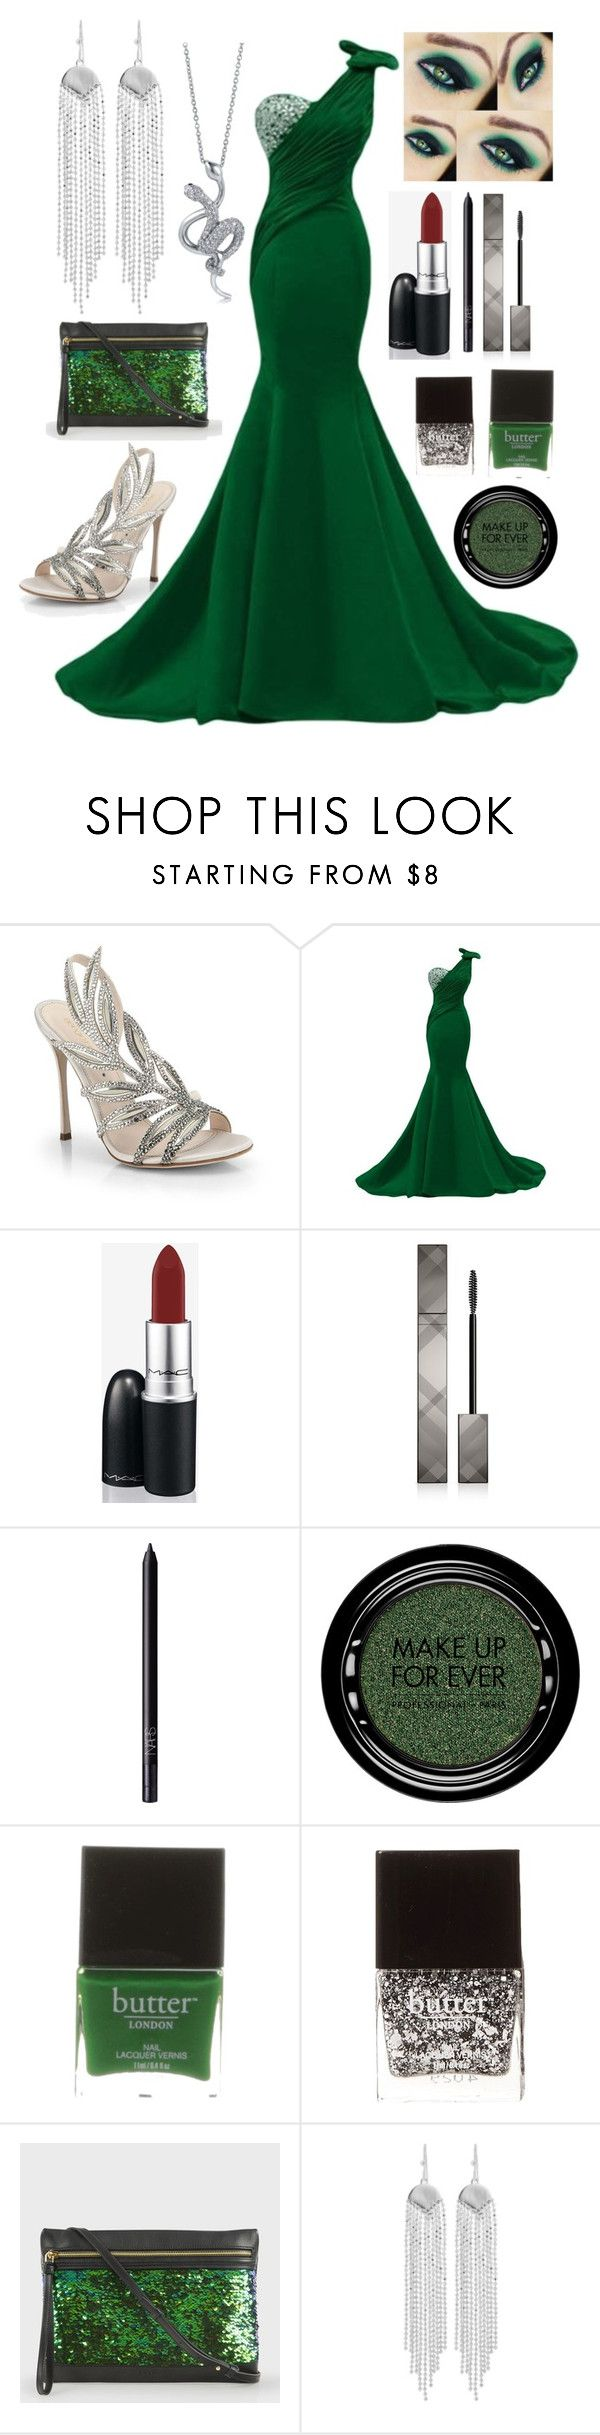 """Slytherin Yule Ball //Annabeth"" by the-fandom-gals ❤ liked on Polyvore featuring Sergio Rossi, CO, MAC Cosmetics, Burberry, NARS Cosmetics, MAKE UP FOR EVER, Butter London, Paul Smith, Oxxo and BERRICLE"